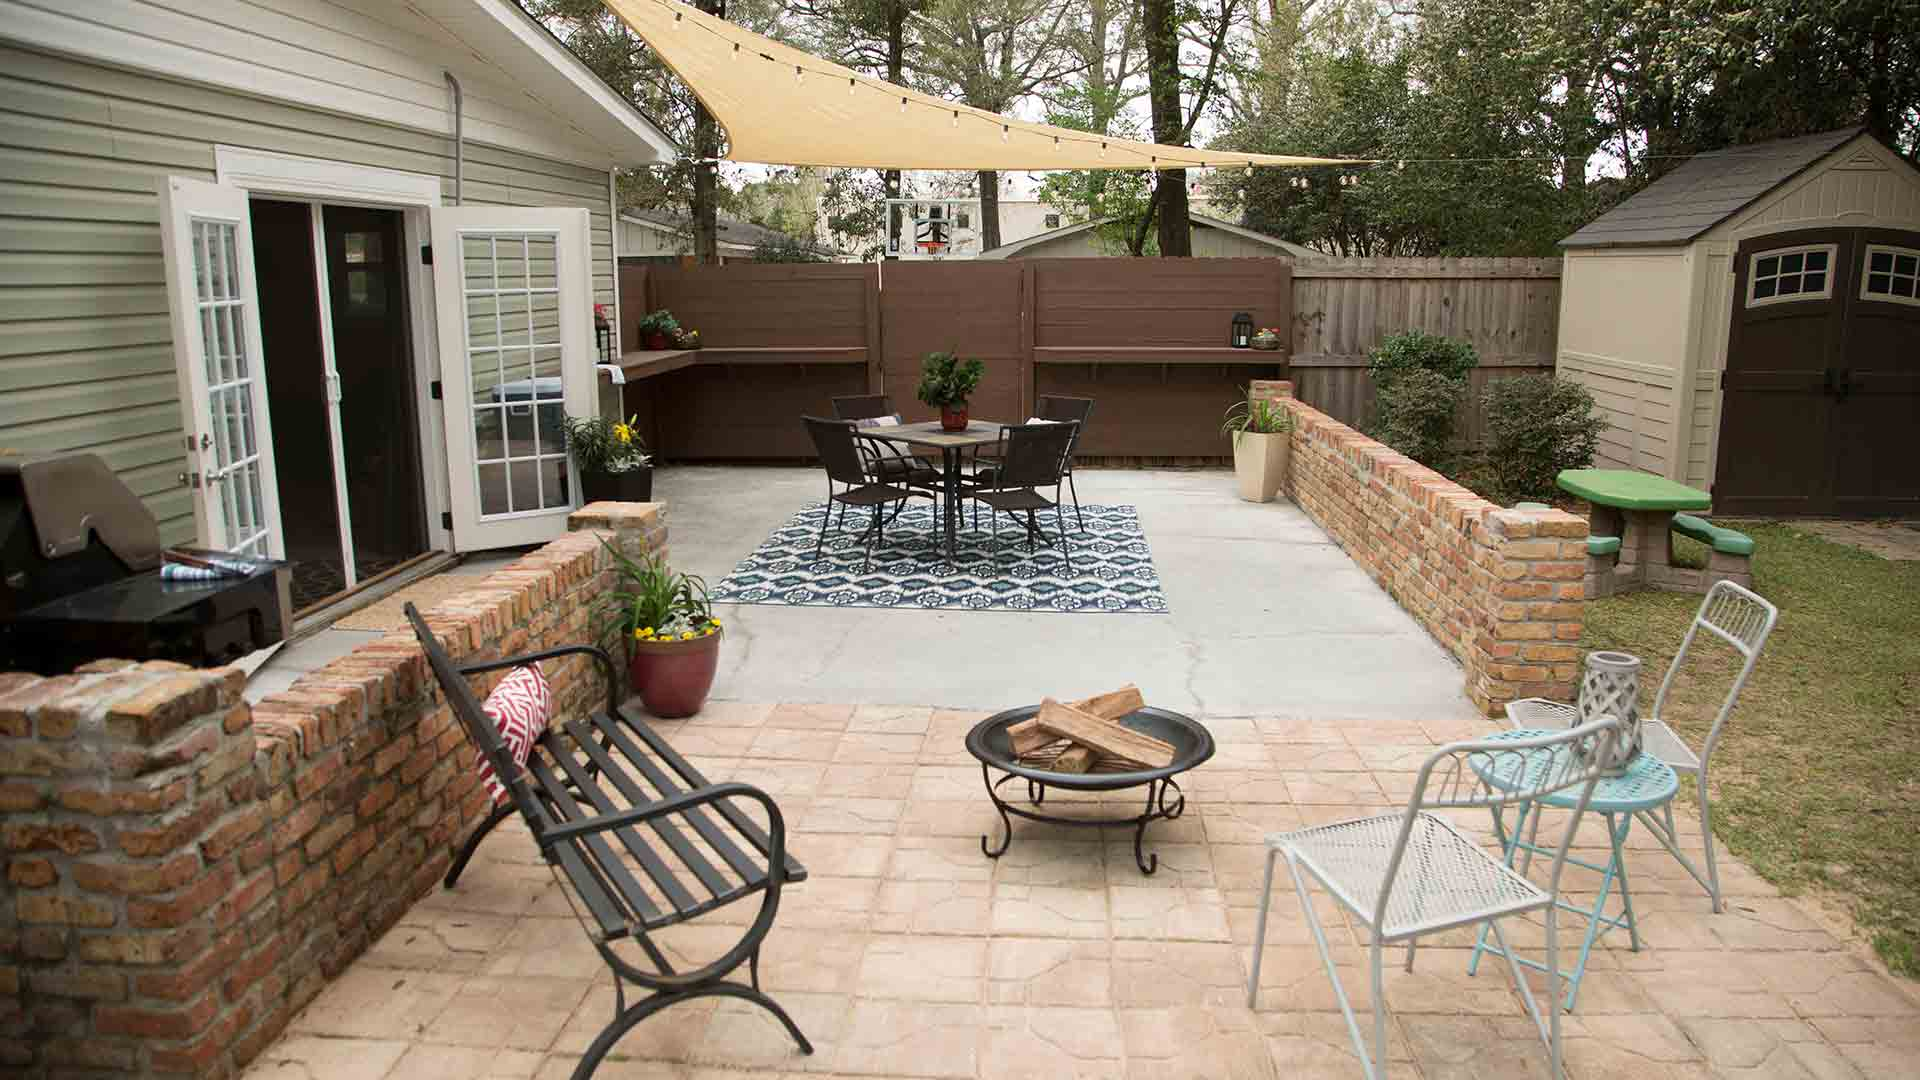 Patio furniture and shade sail cloth covering